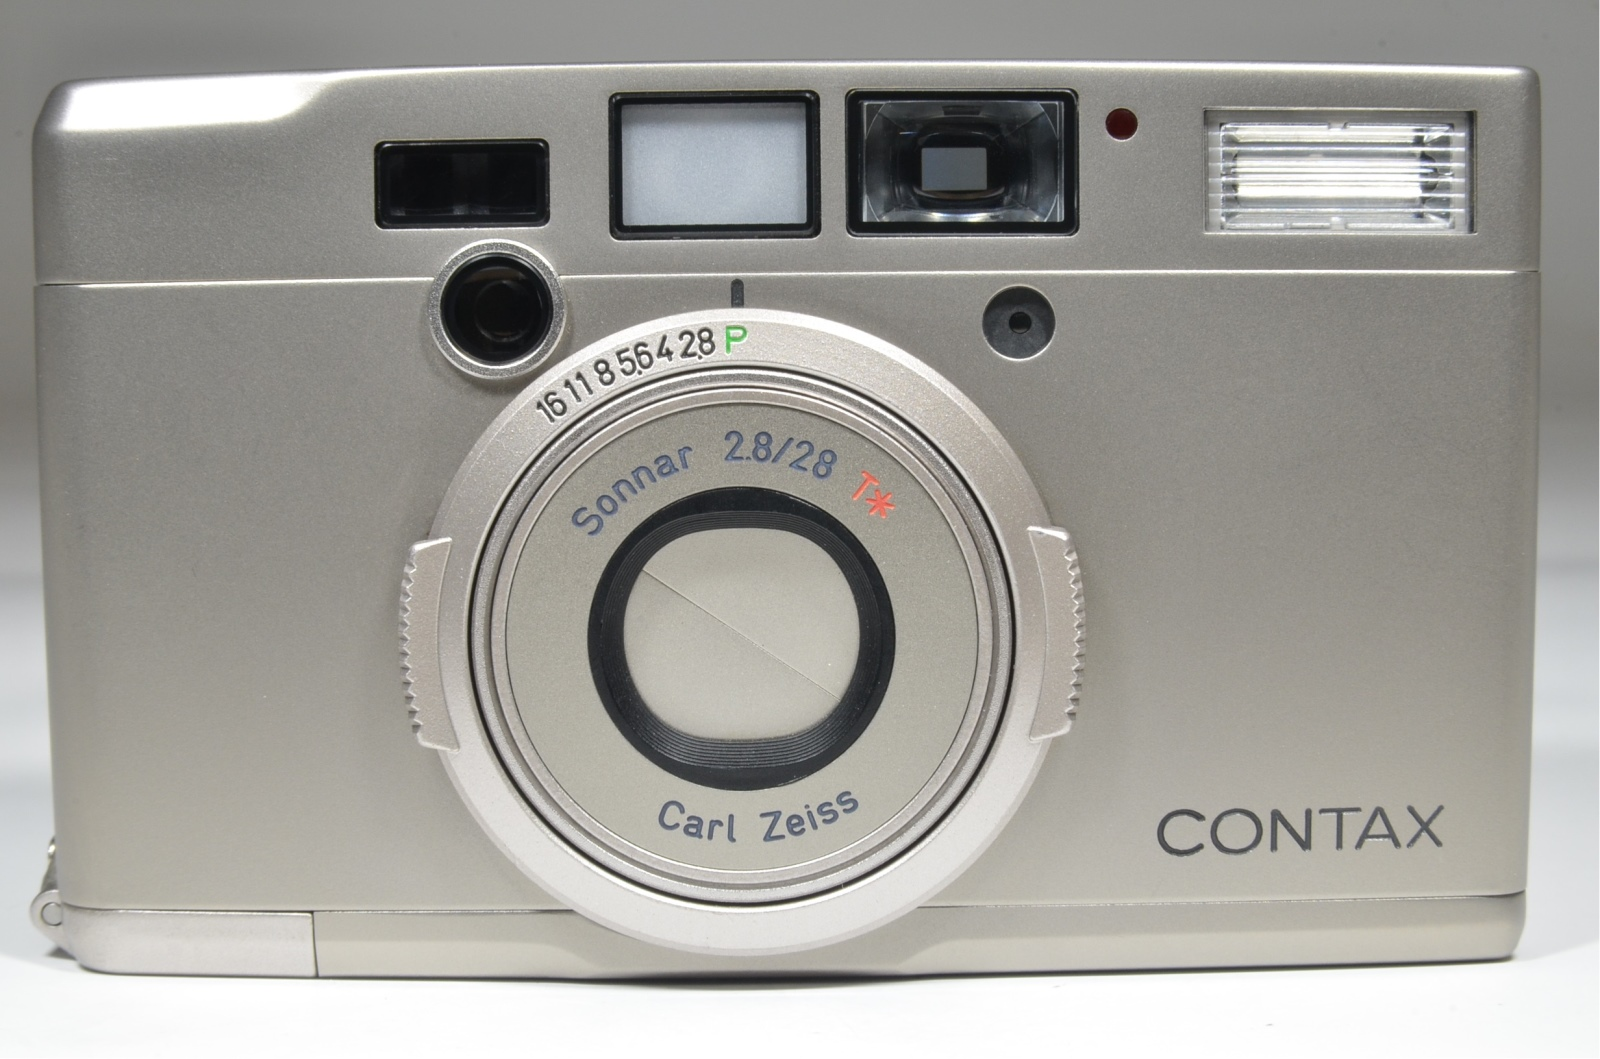 contax tix aps point & shoot film camera